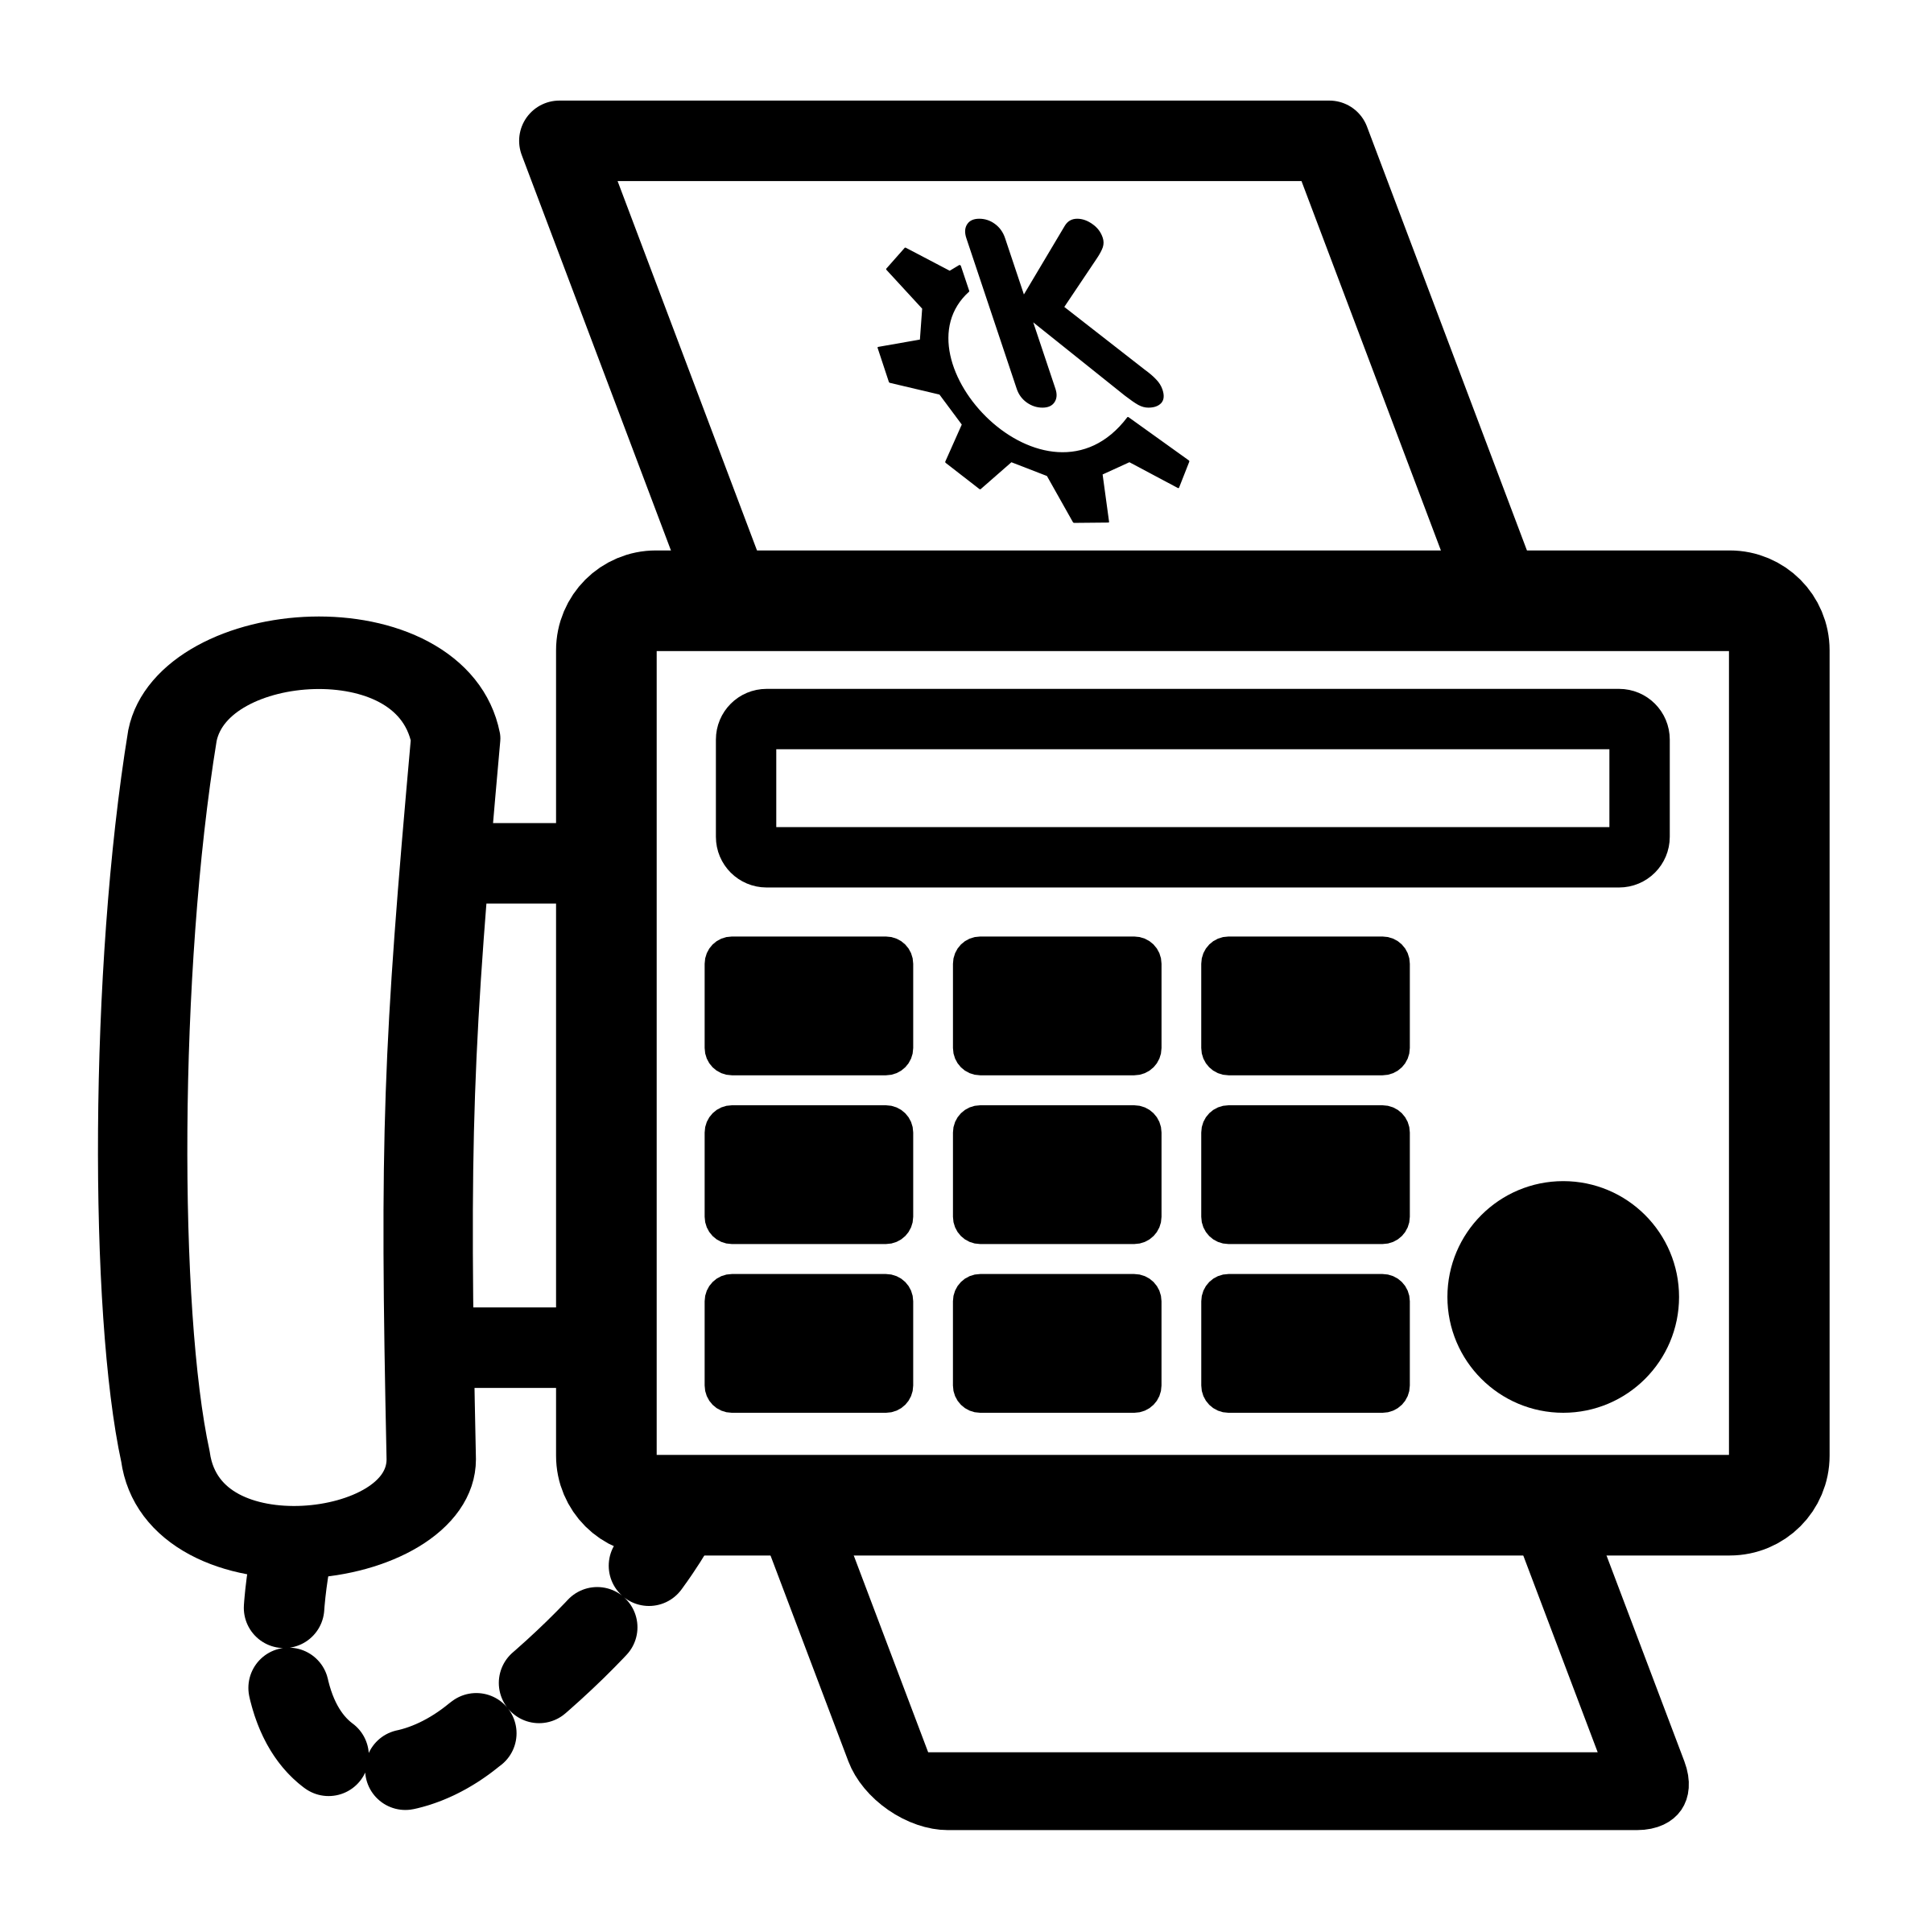 Print and Fax Icon